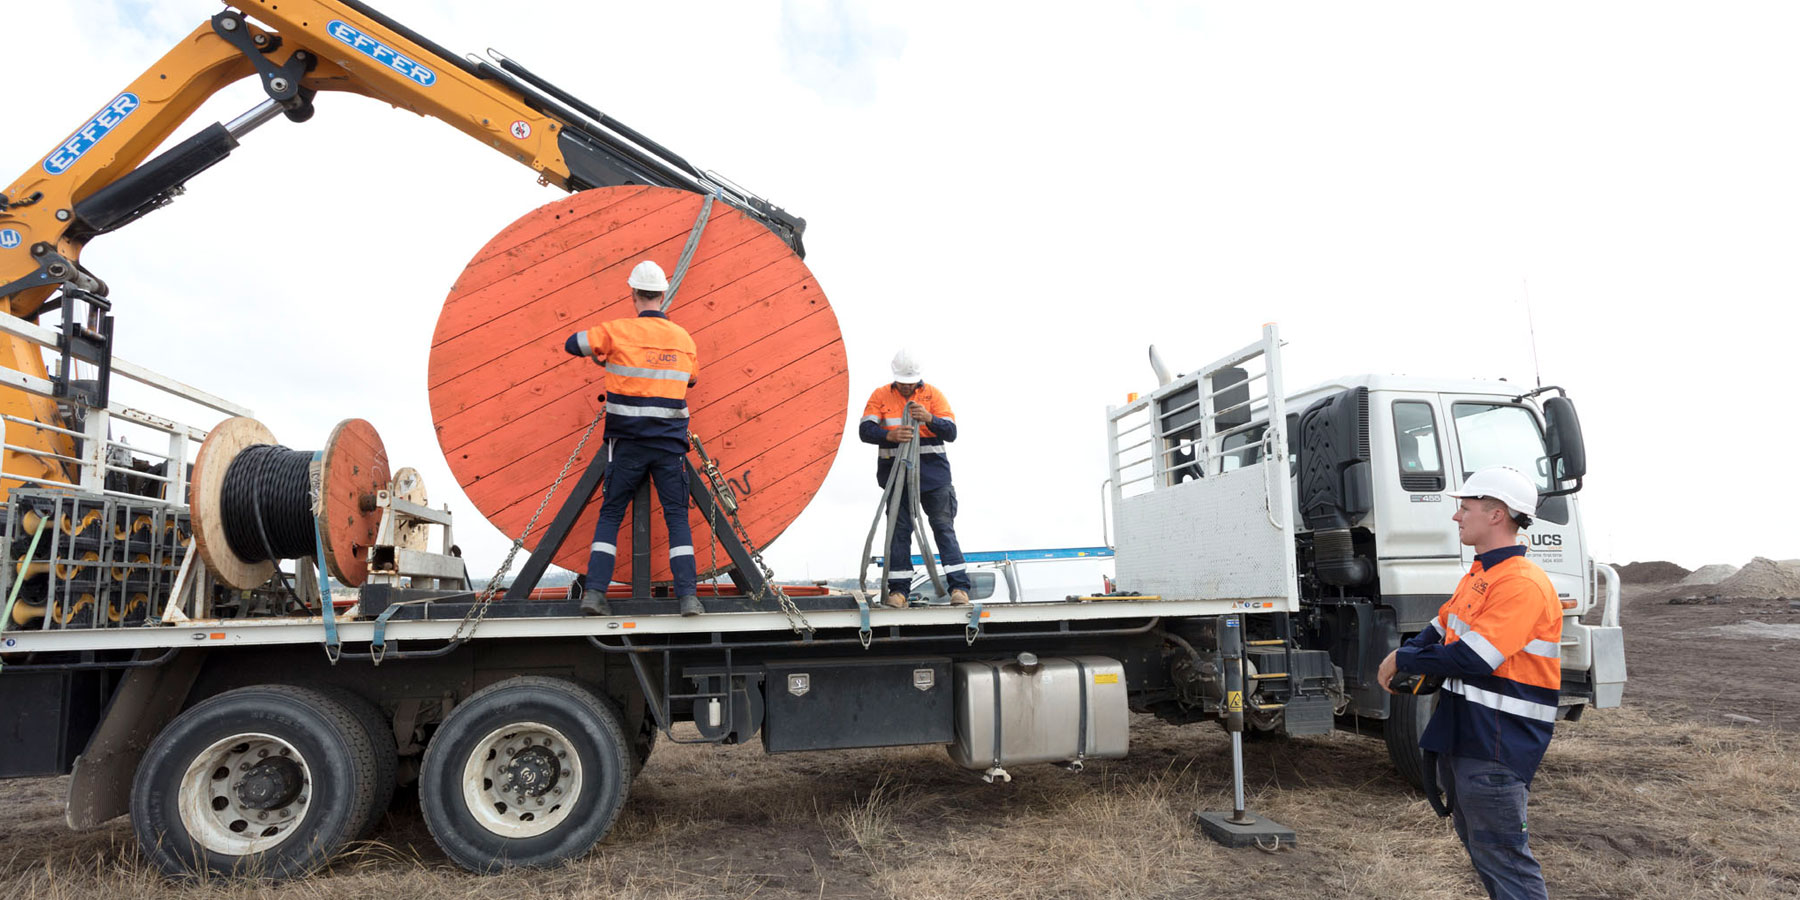 UCS Workmen preparing cable on back of truck